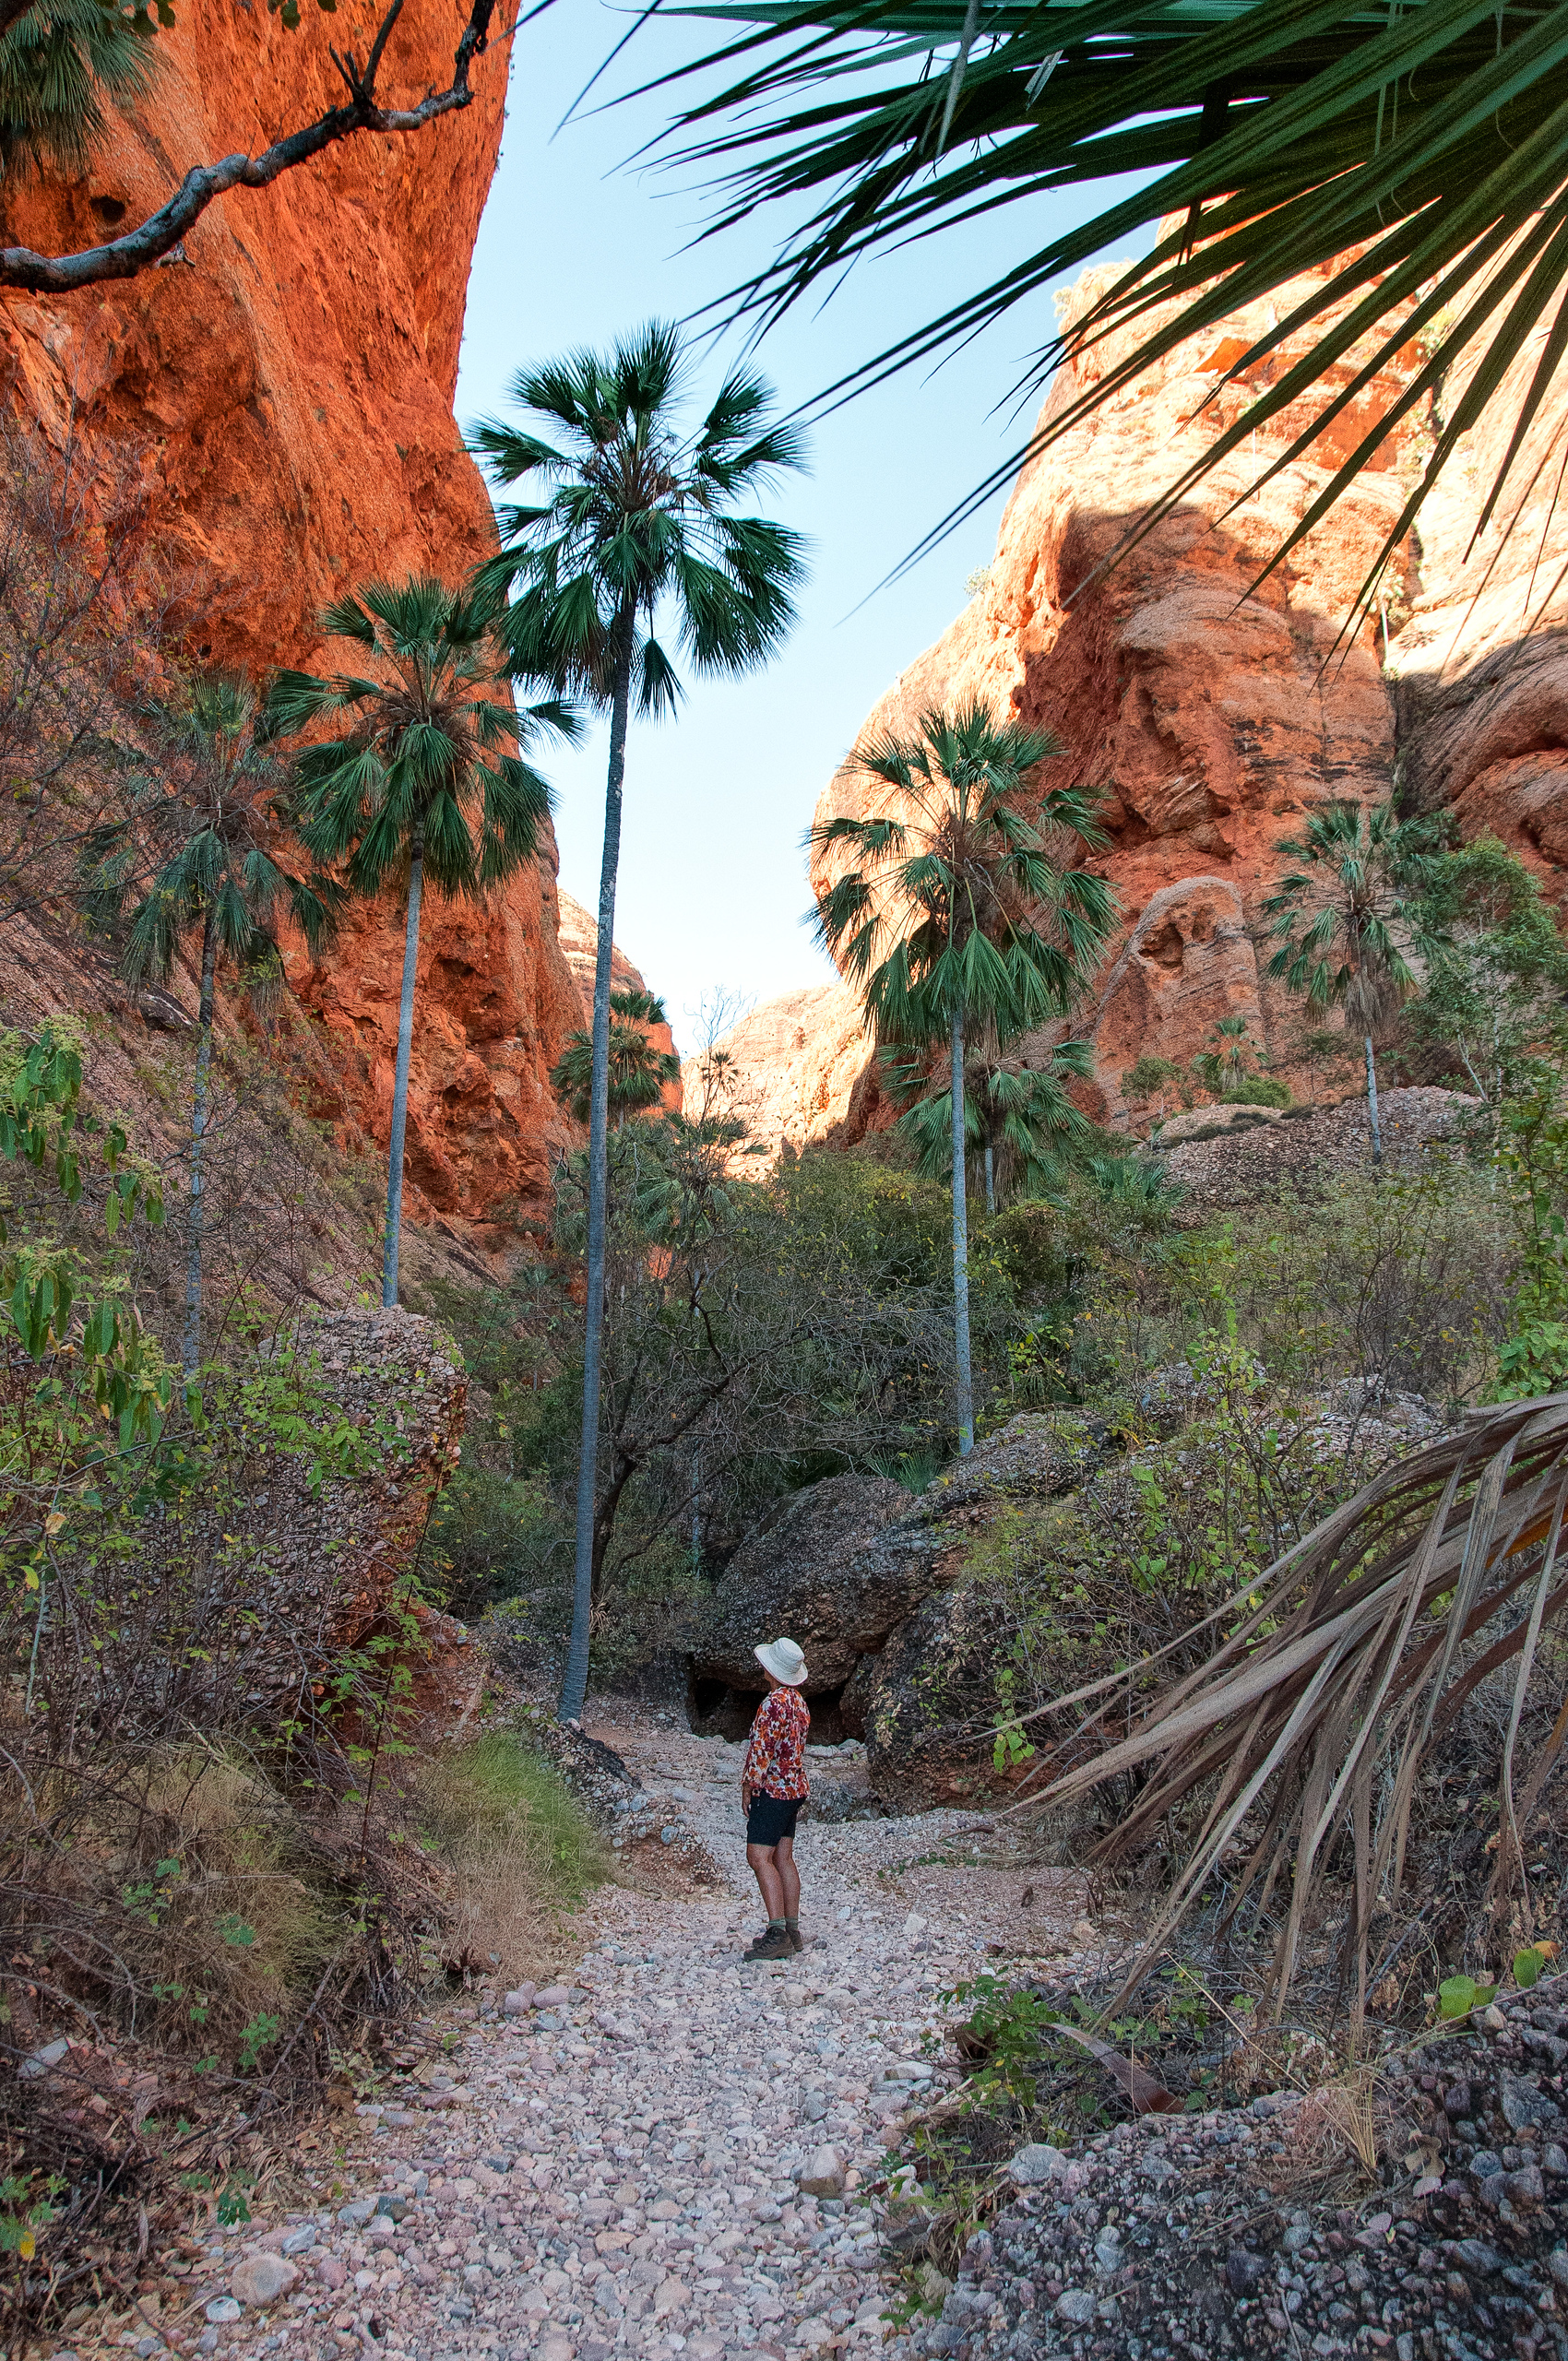 The Mini Palms Trail